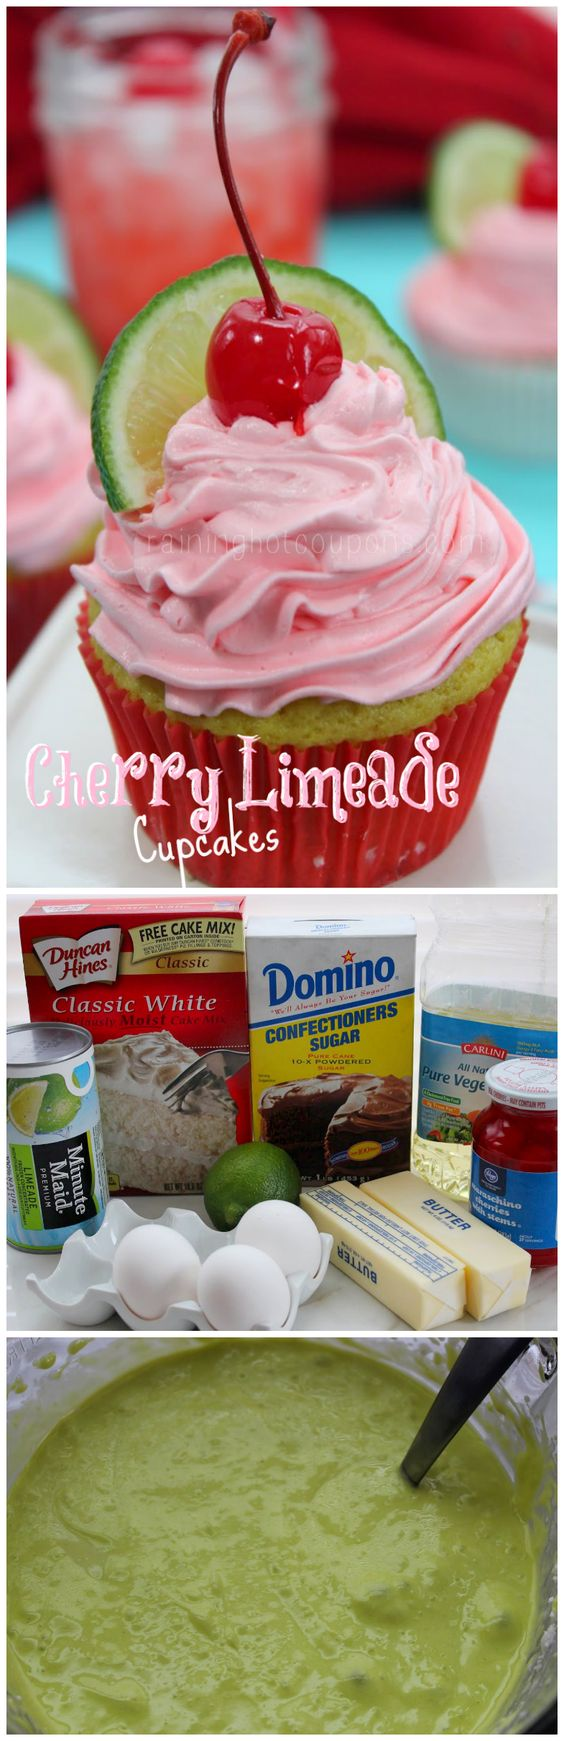 Cherry Limeade  - amazing!  I added 1/2 tsp of cherry extract to the icing.  Wonderful!